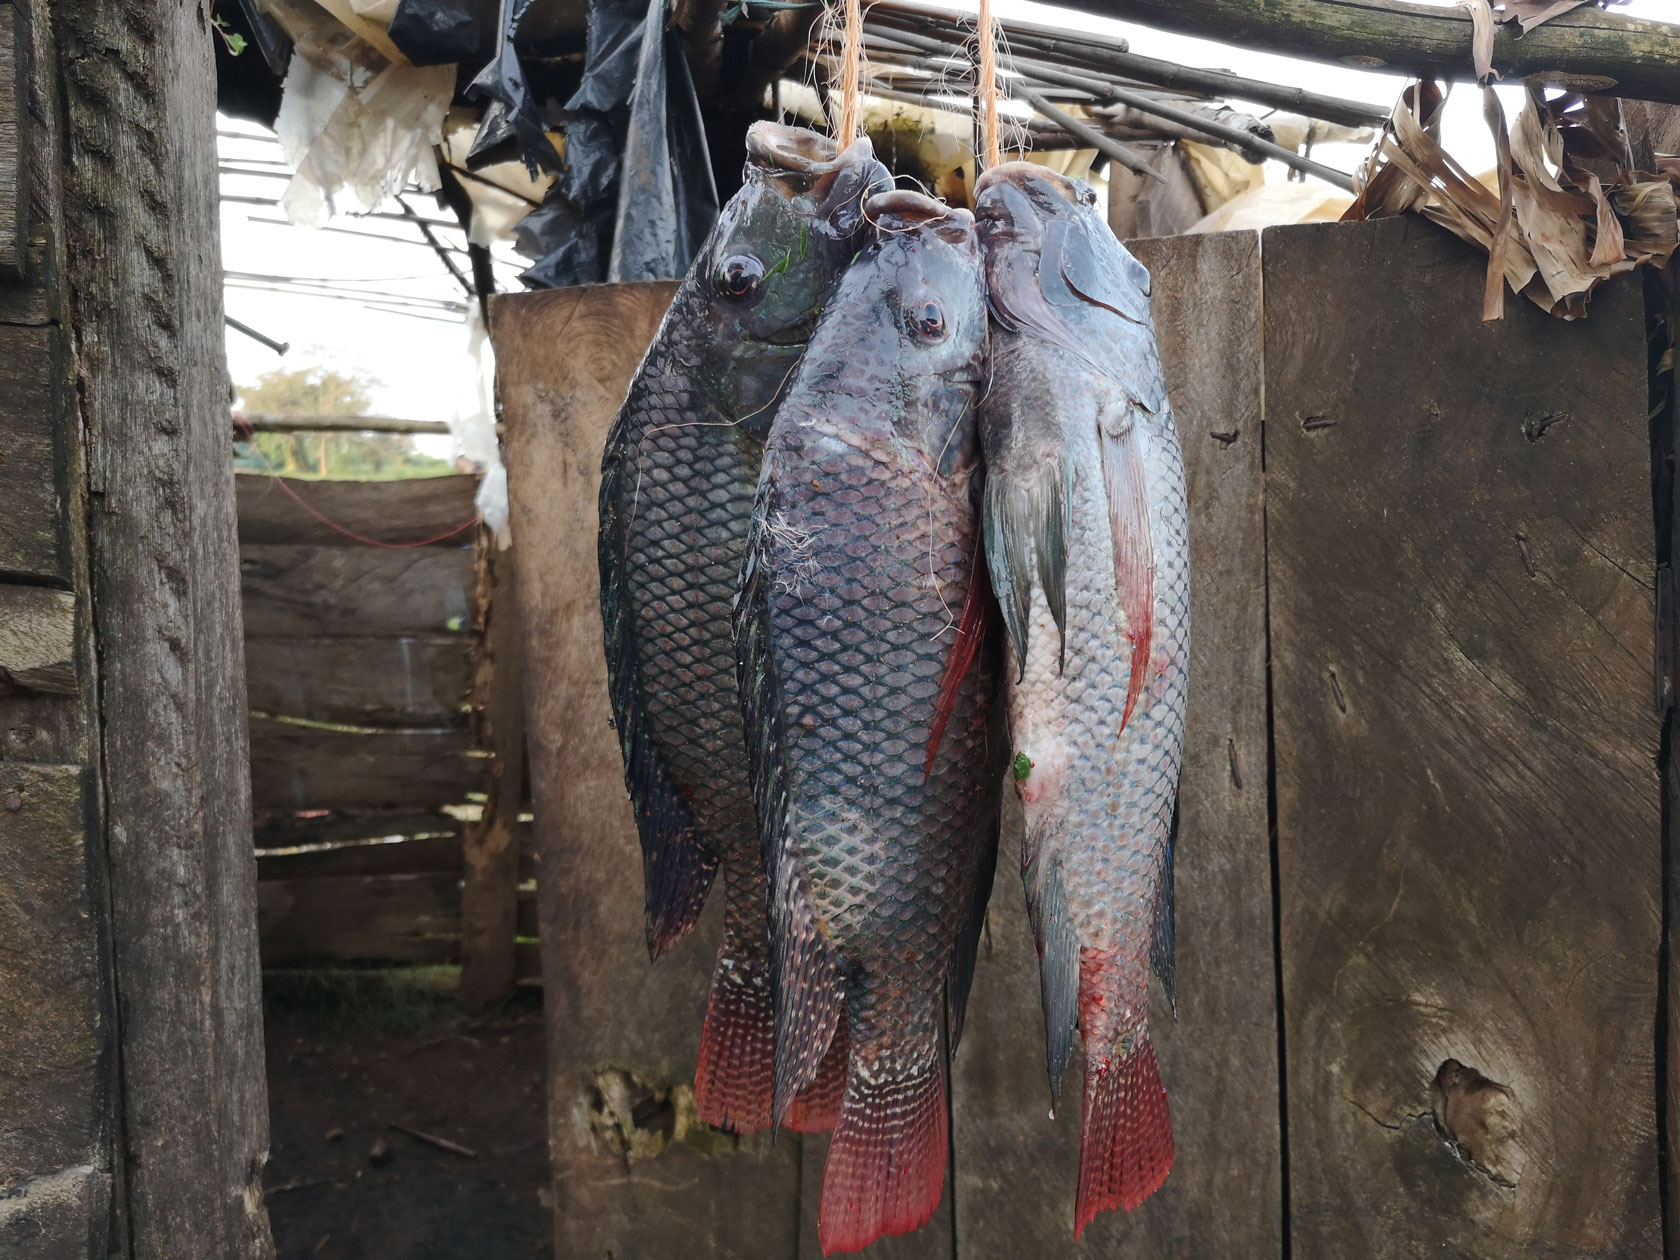 Fish hanging in a wooden hut close to Lake Victoria in Uganda